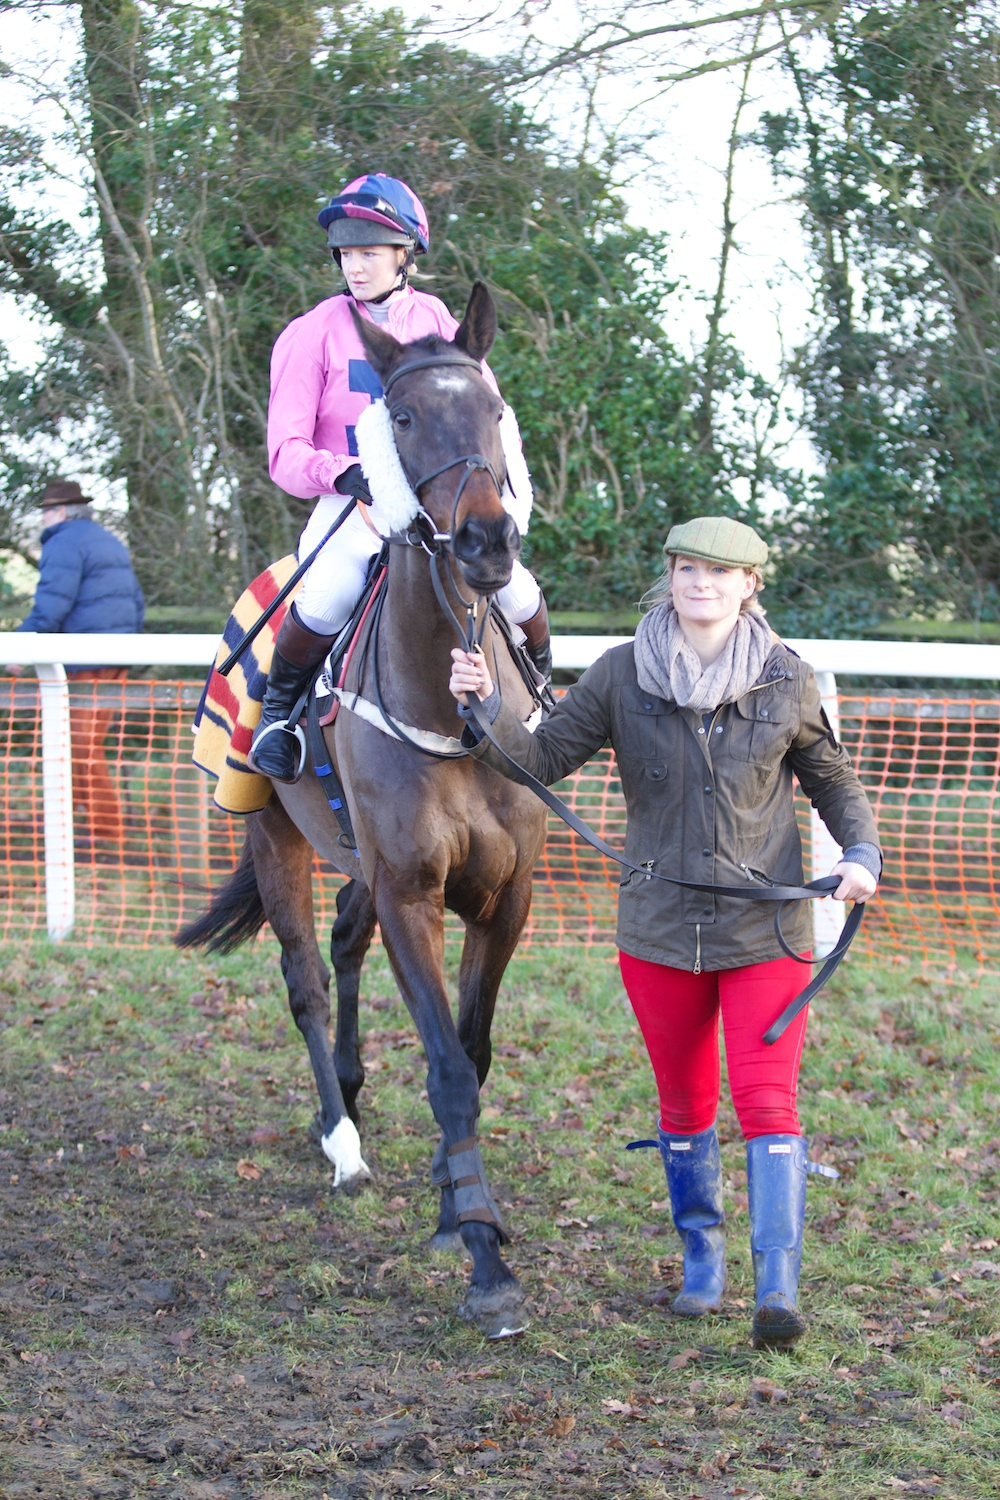 Rear Gunner, ridden by Hannah Grissell and led up by her sister Rose